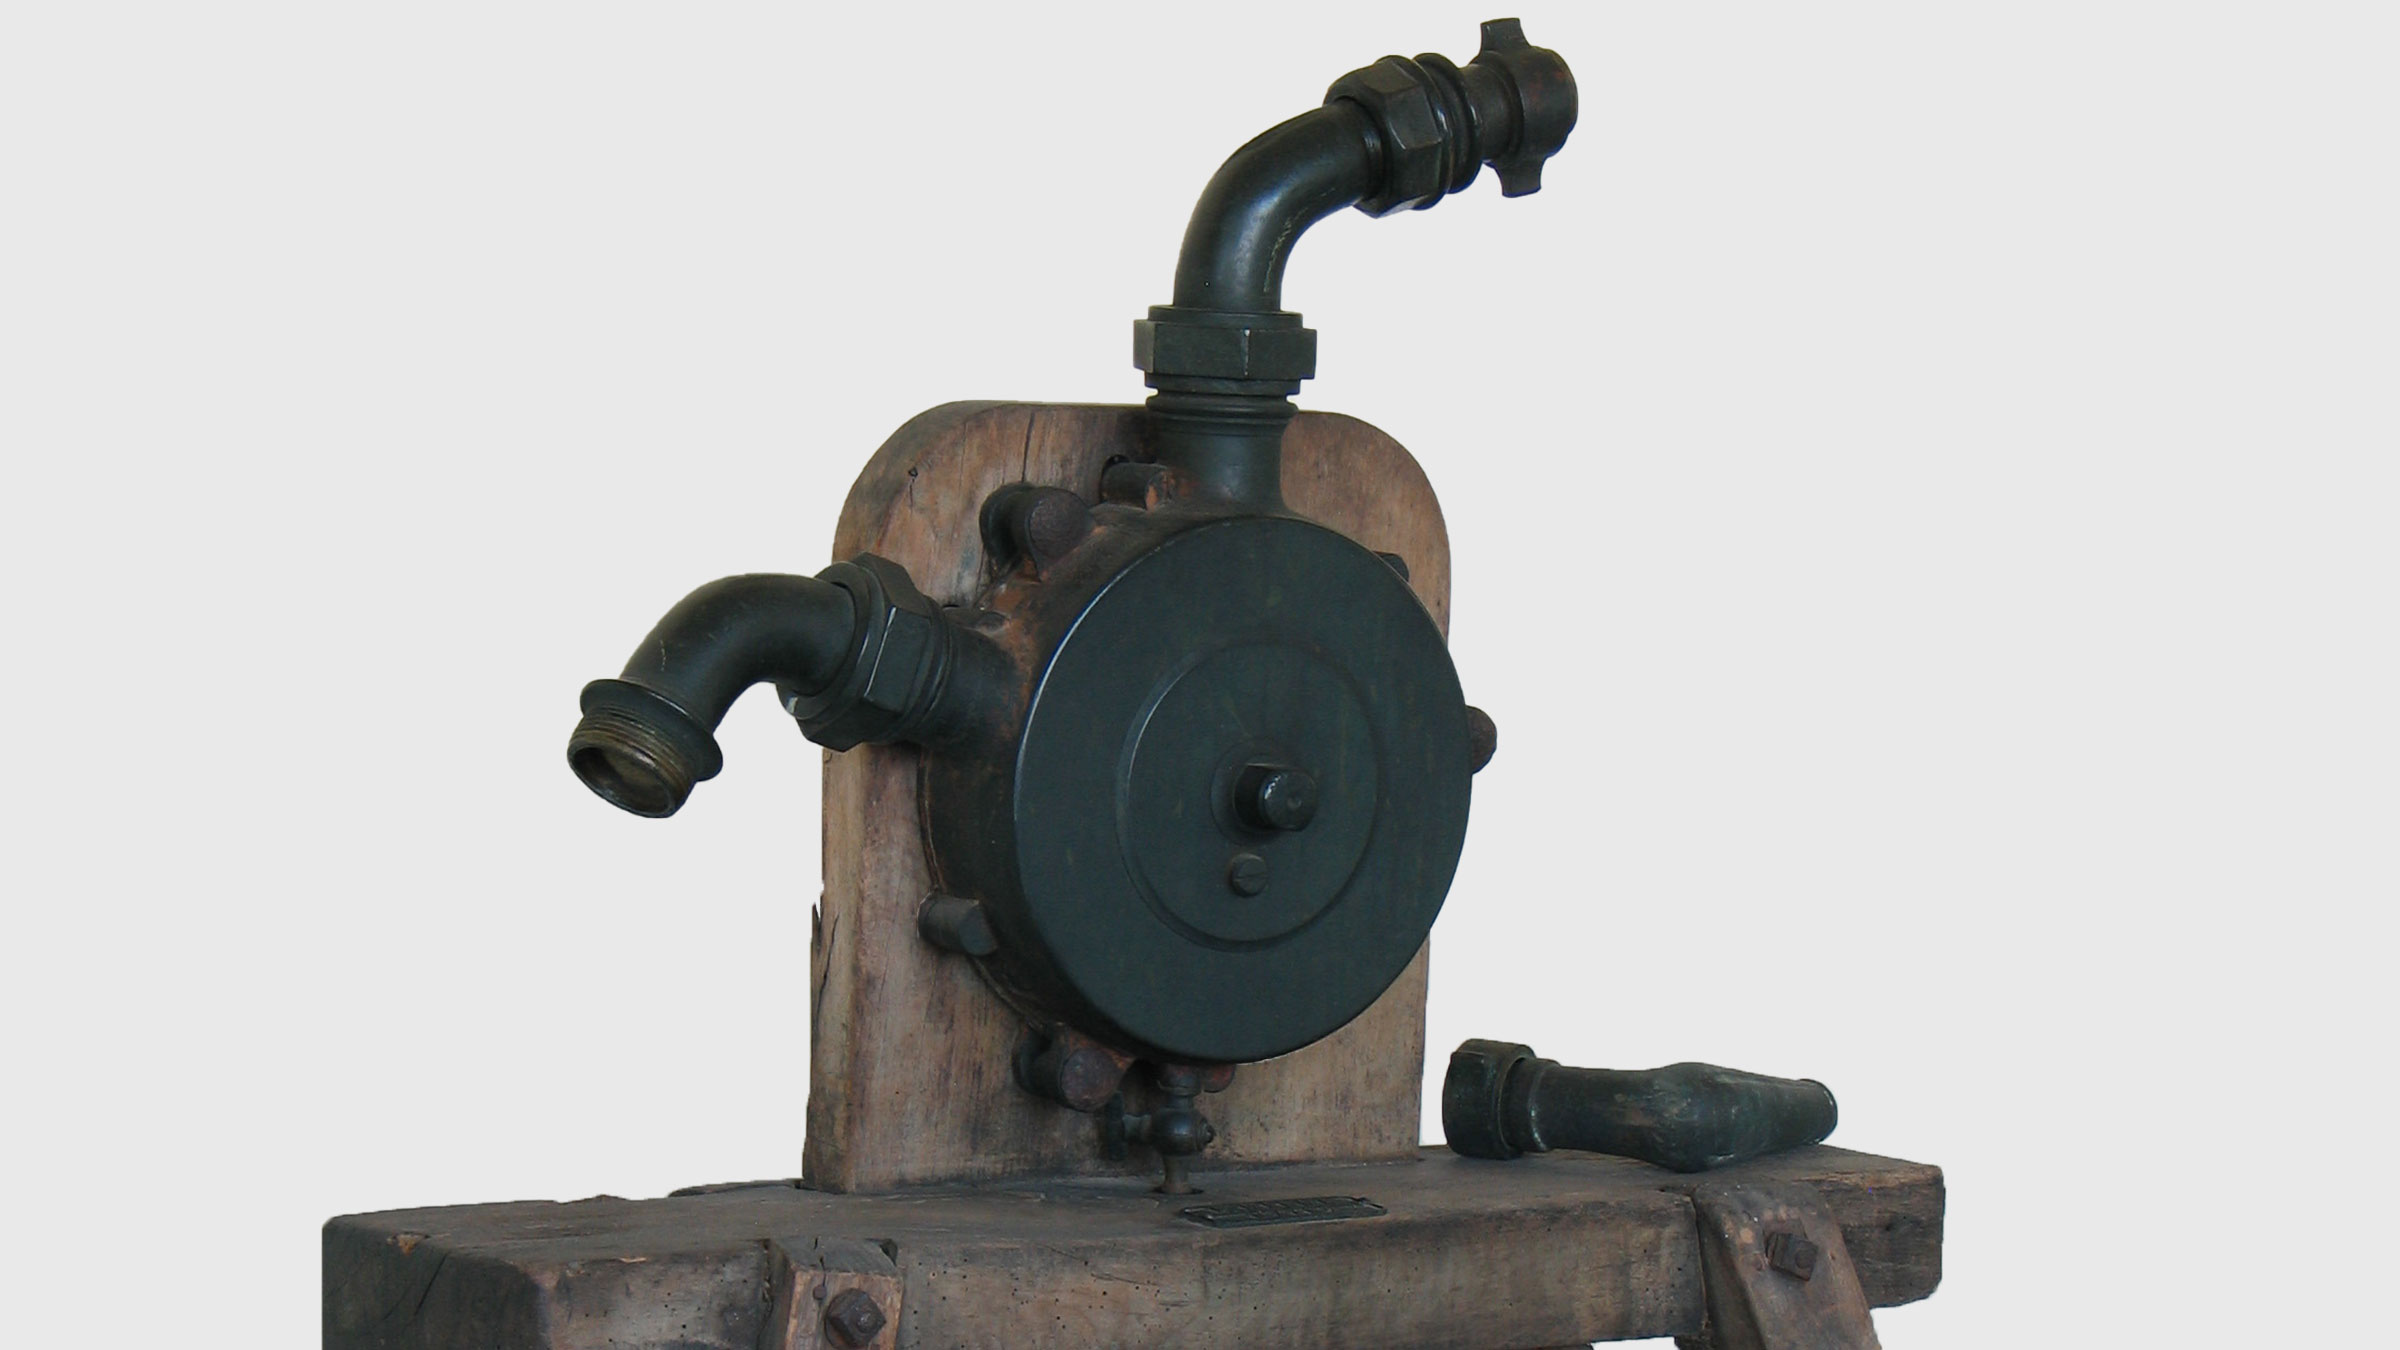 Rhenish Circular Pump from 1866 fa. Hilge